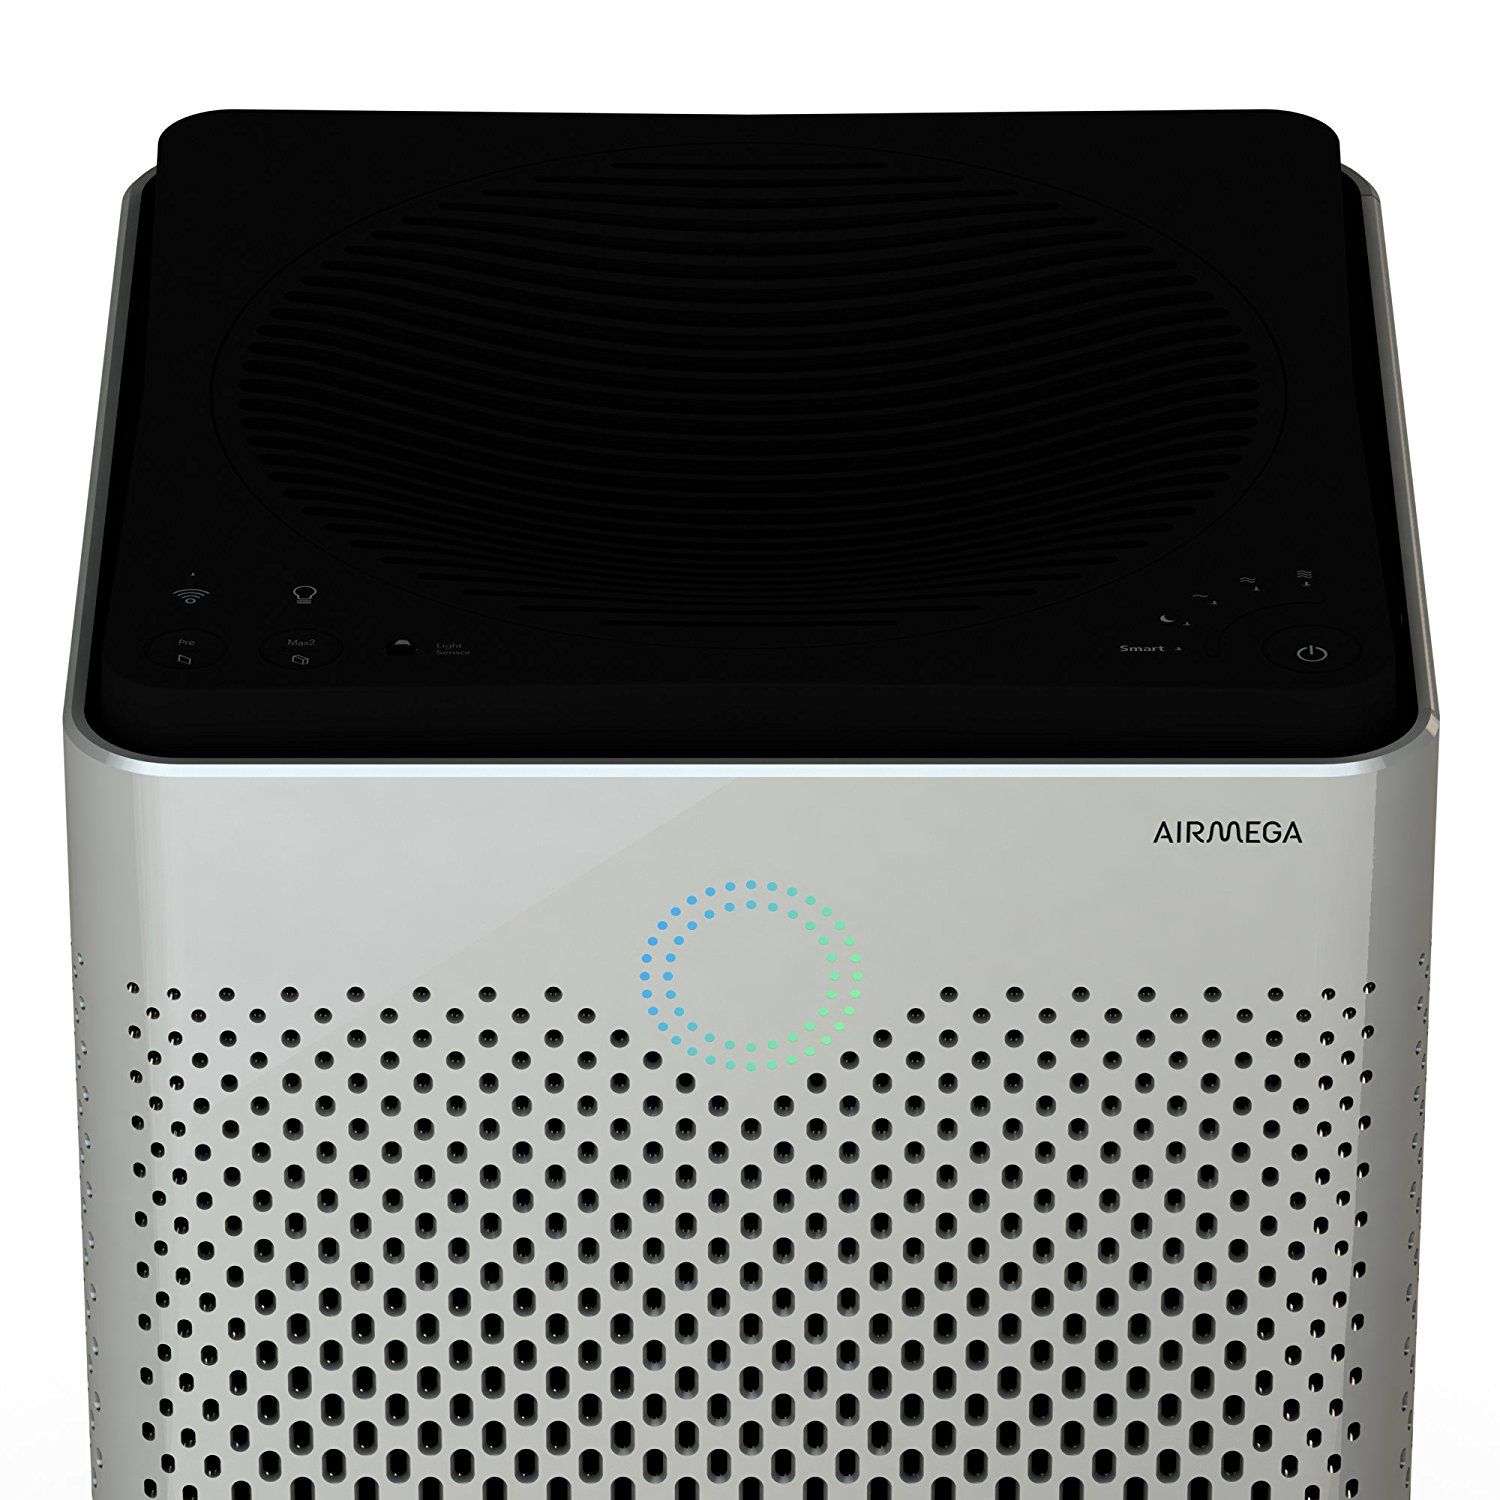 This is the perfect AIRMEGA 300 Smarter Air Purifier